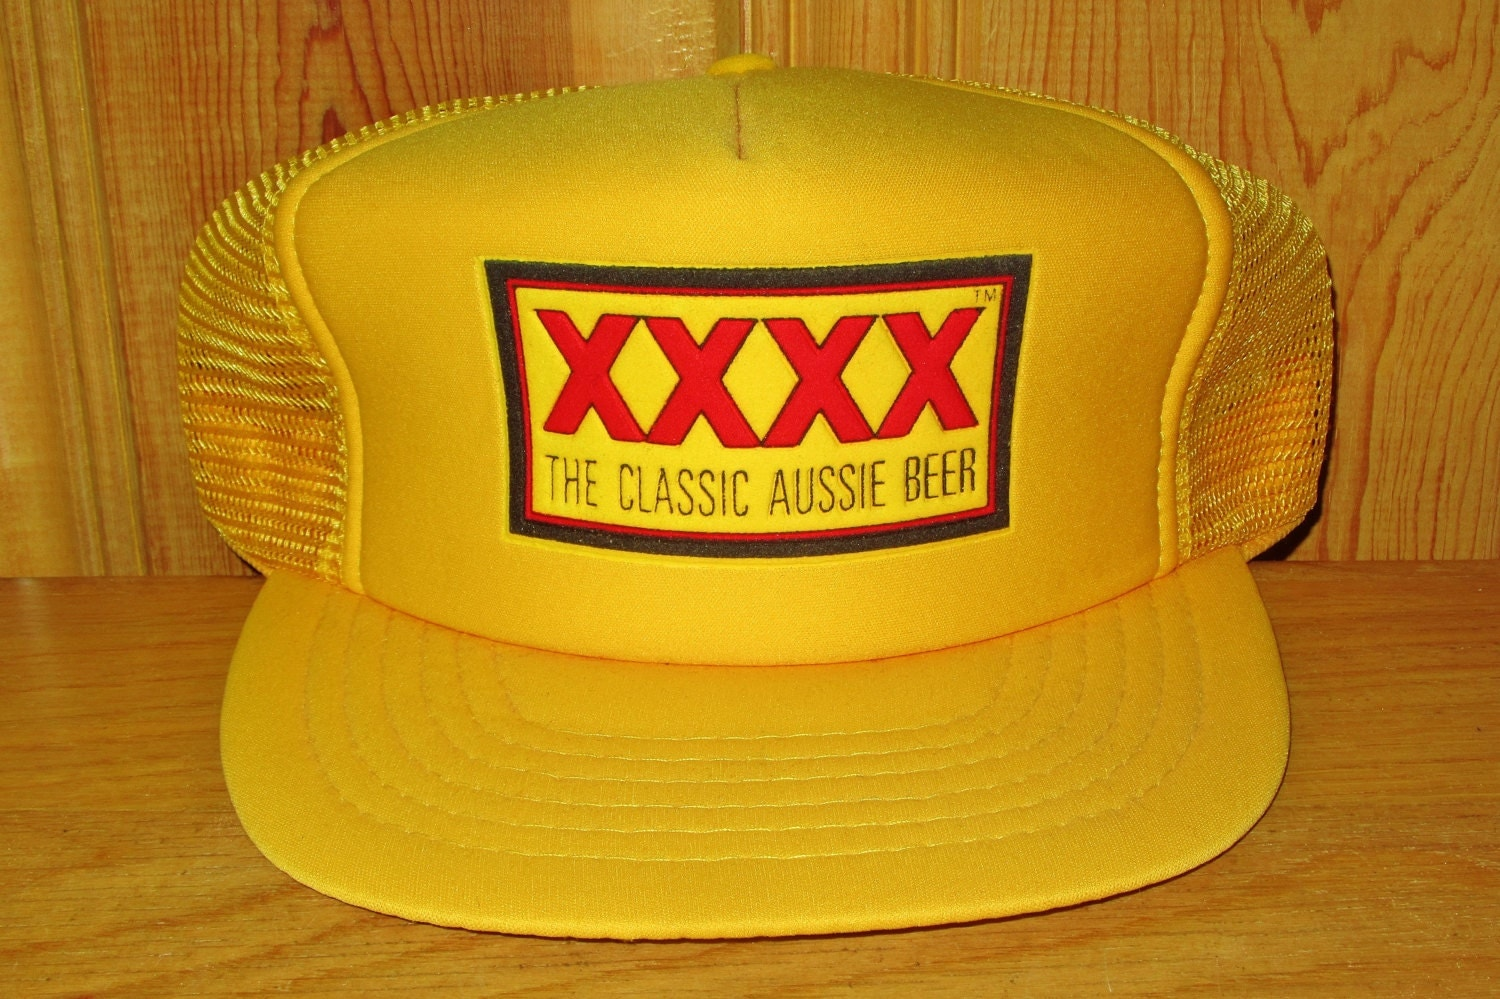 XXXX The Classic Aussie Beer Original Vintage 80s Yellow Mesh